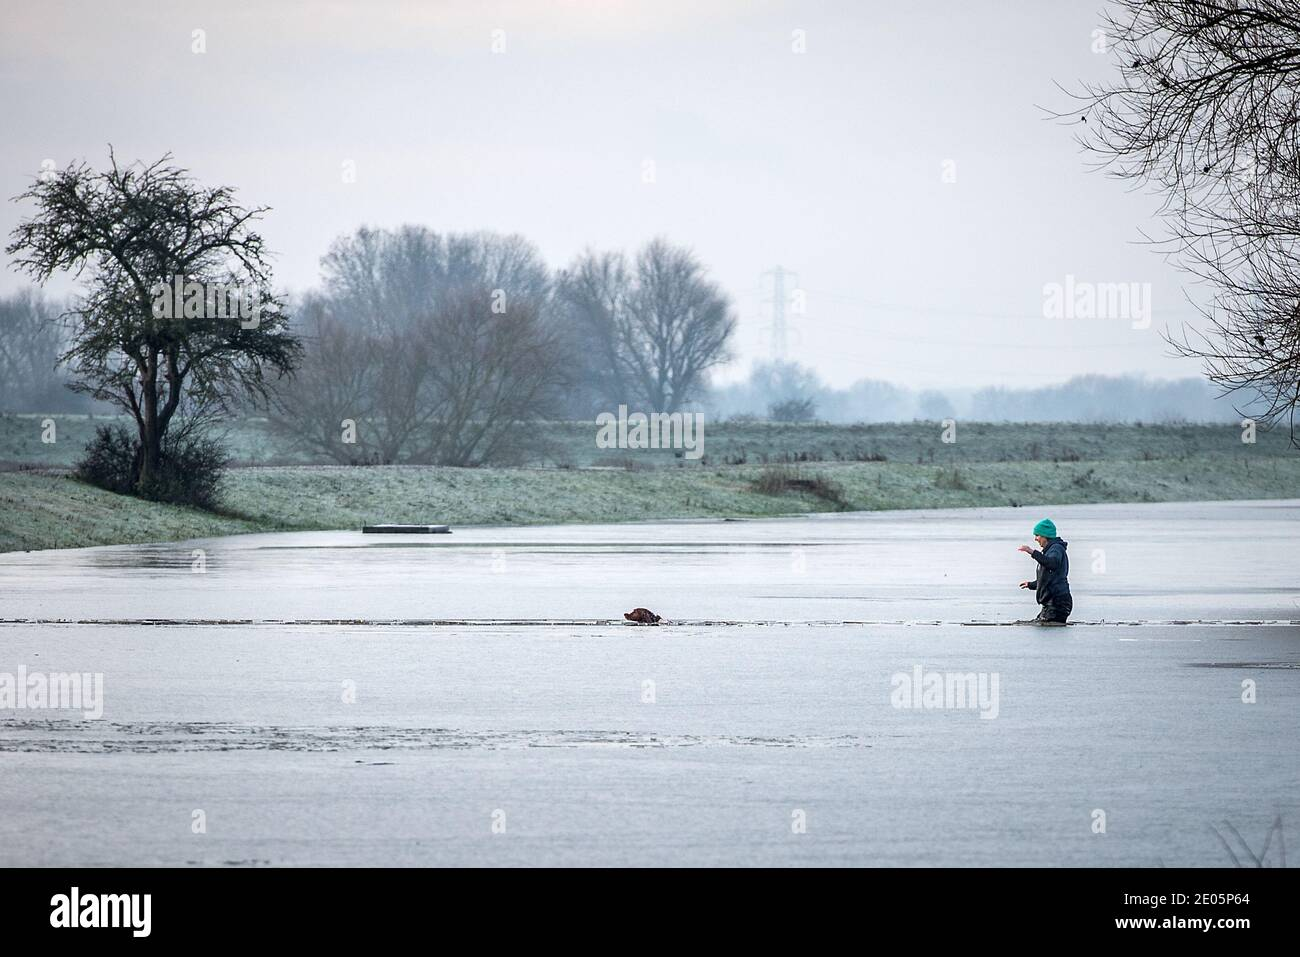 Gunthorpe, Nottinghamshire, UK. 30th Dec 2020. A women rescues her dog in frozen floodwaters by the River Trent near Gunthorpe, Nottinghamshire. Neil Squires/Alamy Live News Stock Photo